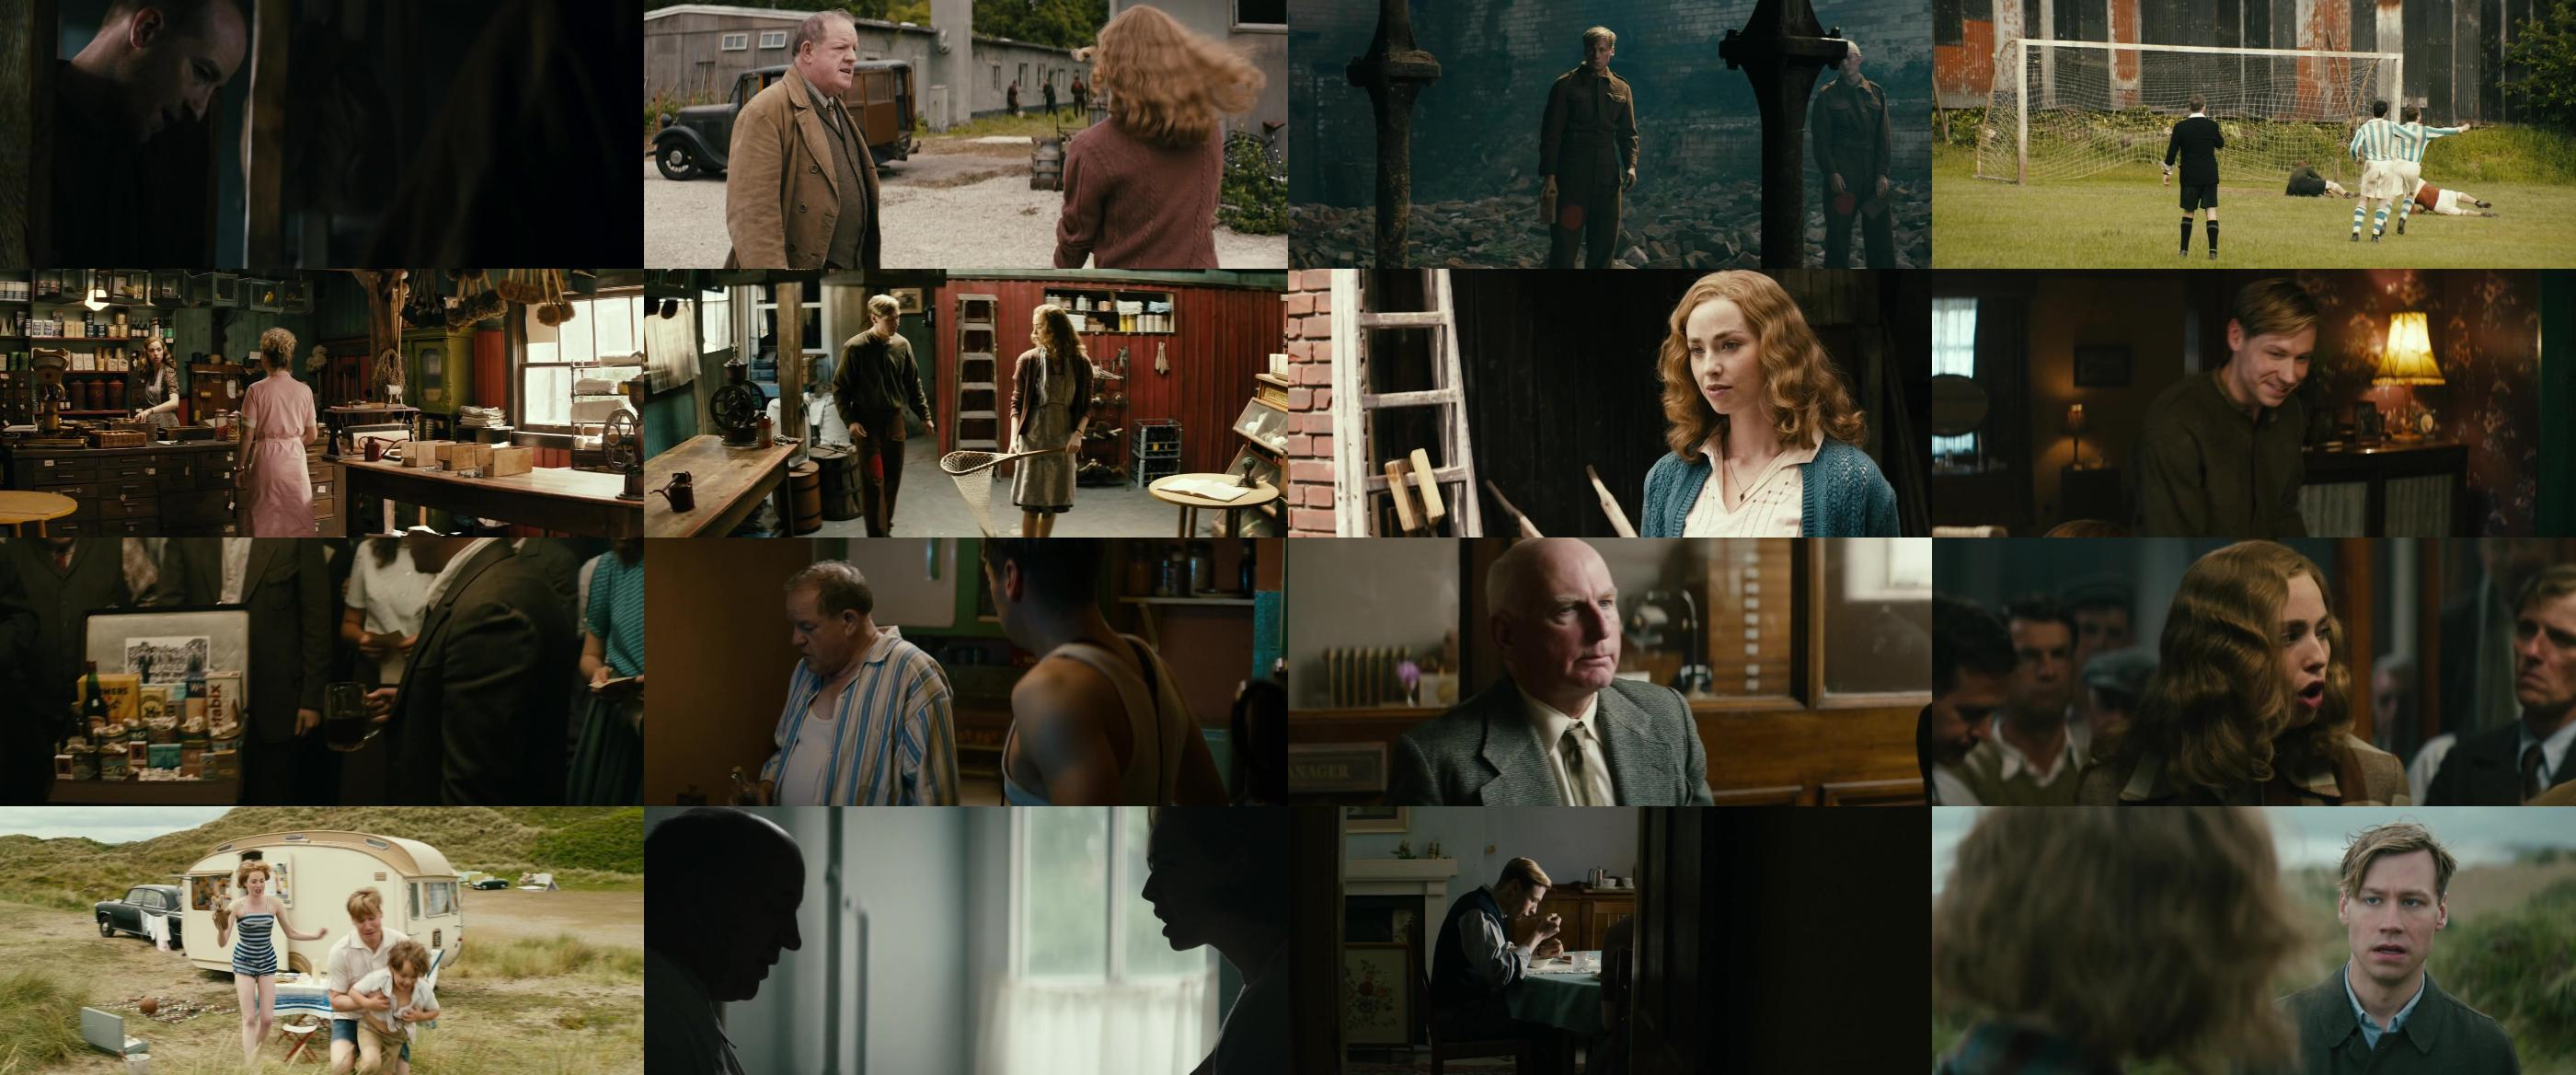 The Keeper 2018 720p WEB DL XviD MP3 FGT